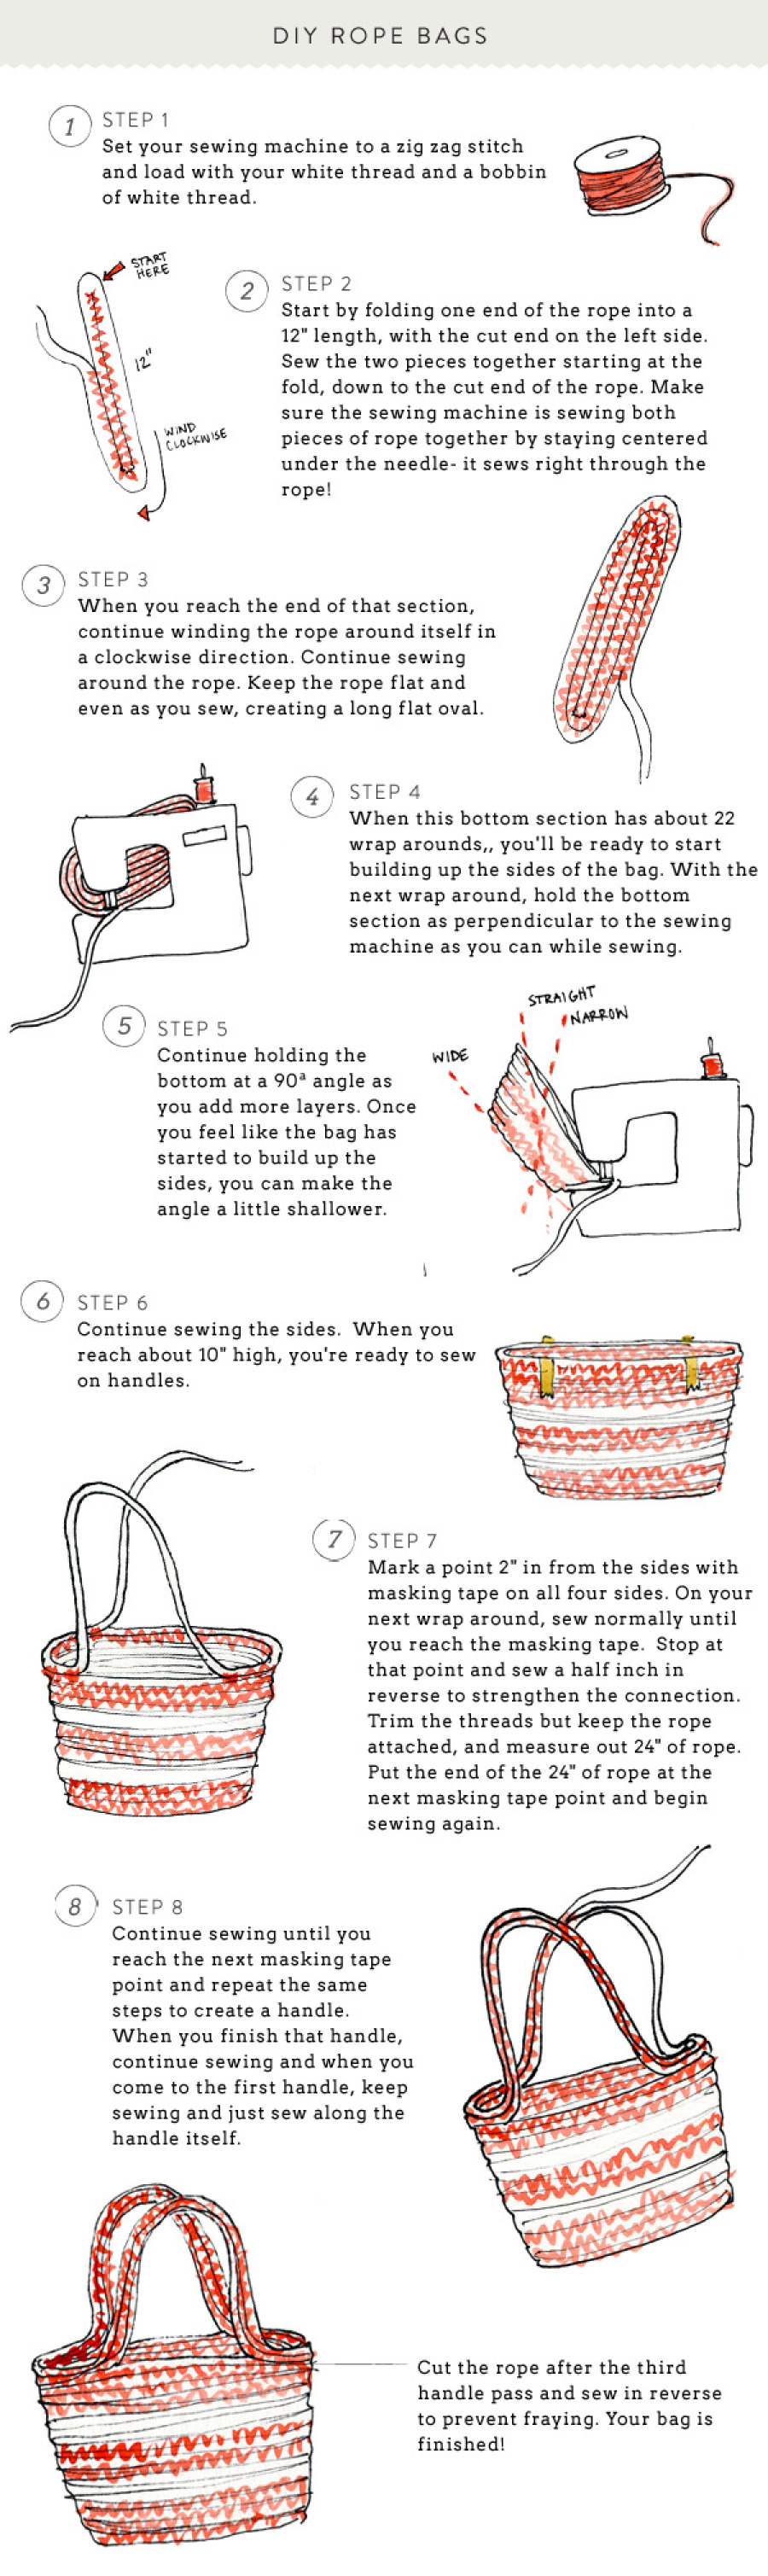 Diy rope bag style me pretty charming diy ideas for Rope designs and more